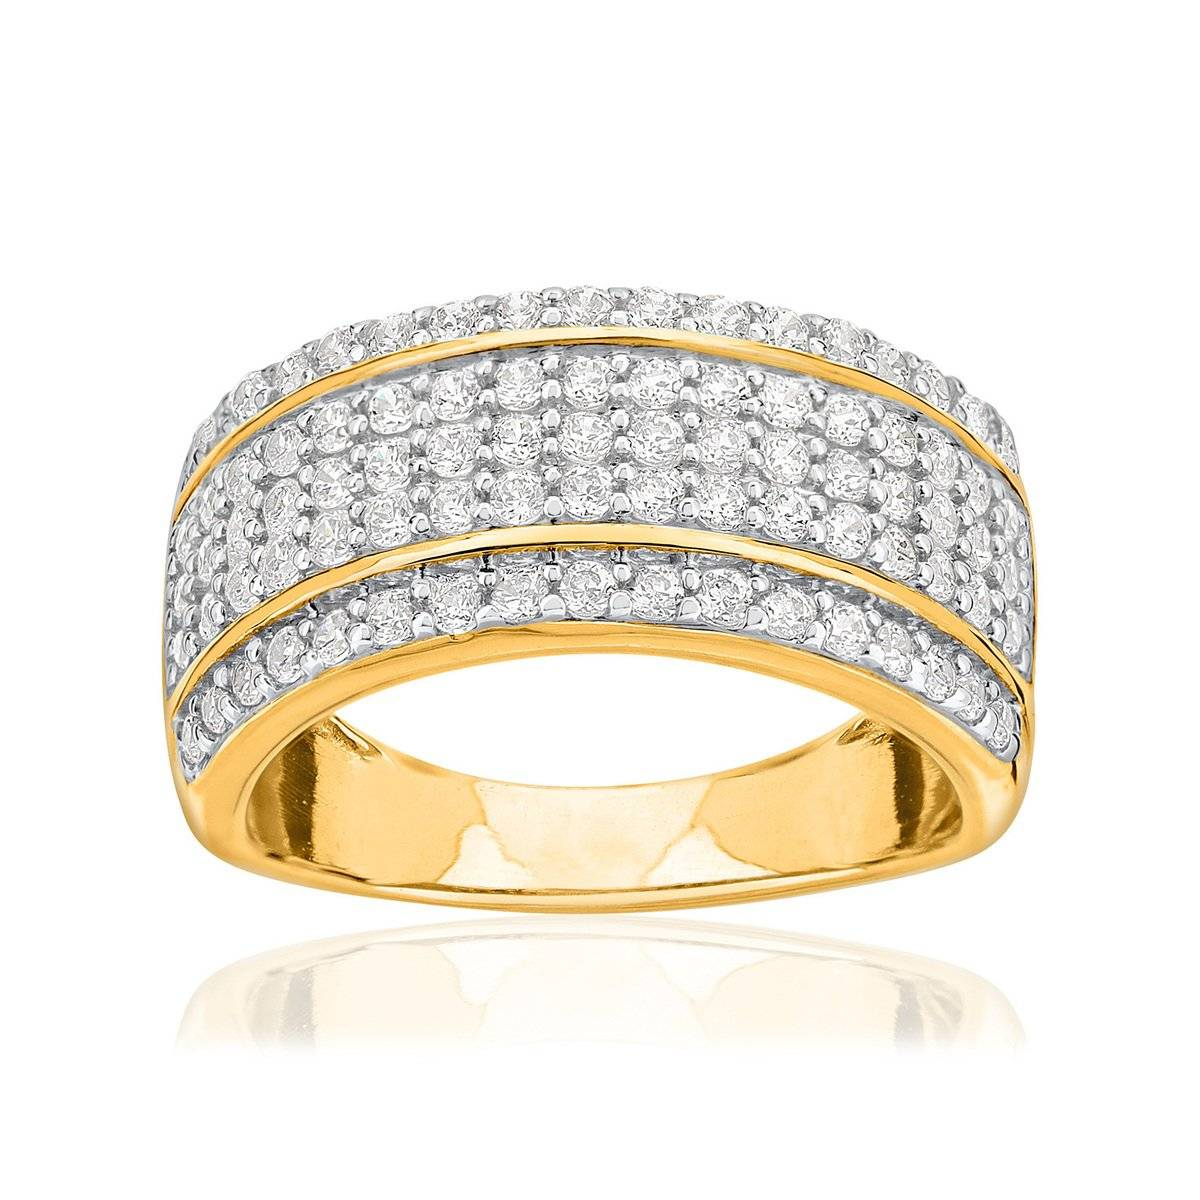 MATY Bague or 750 2 tons diamants synthétiques 1 carat- MATY